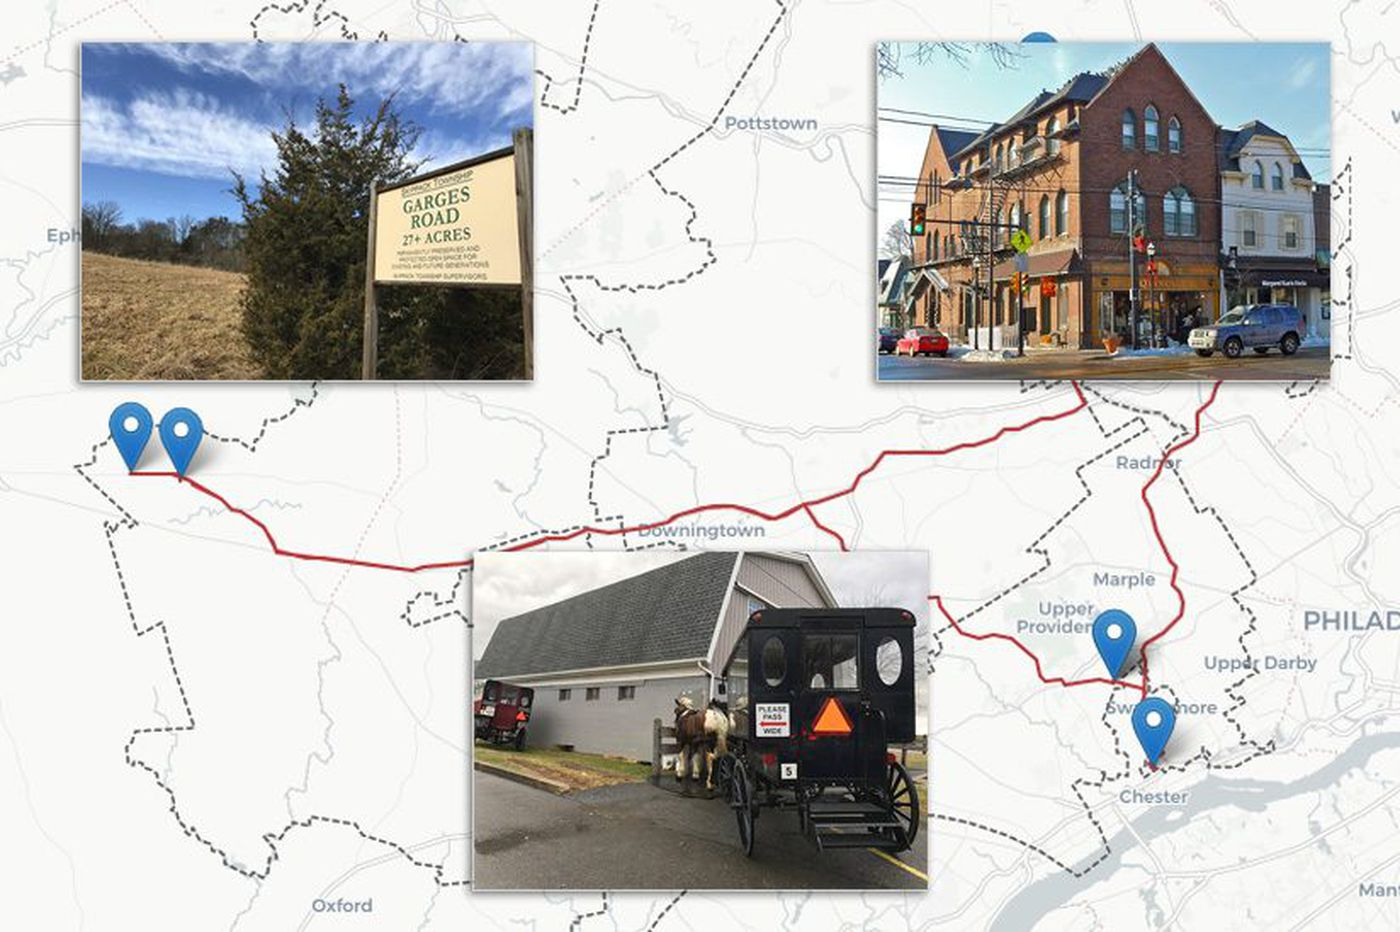 Pat Meehan's district: A trippin' road trip through Pennsylvania's most gerrymandered Land of Make Believe   Maria Panaritis